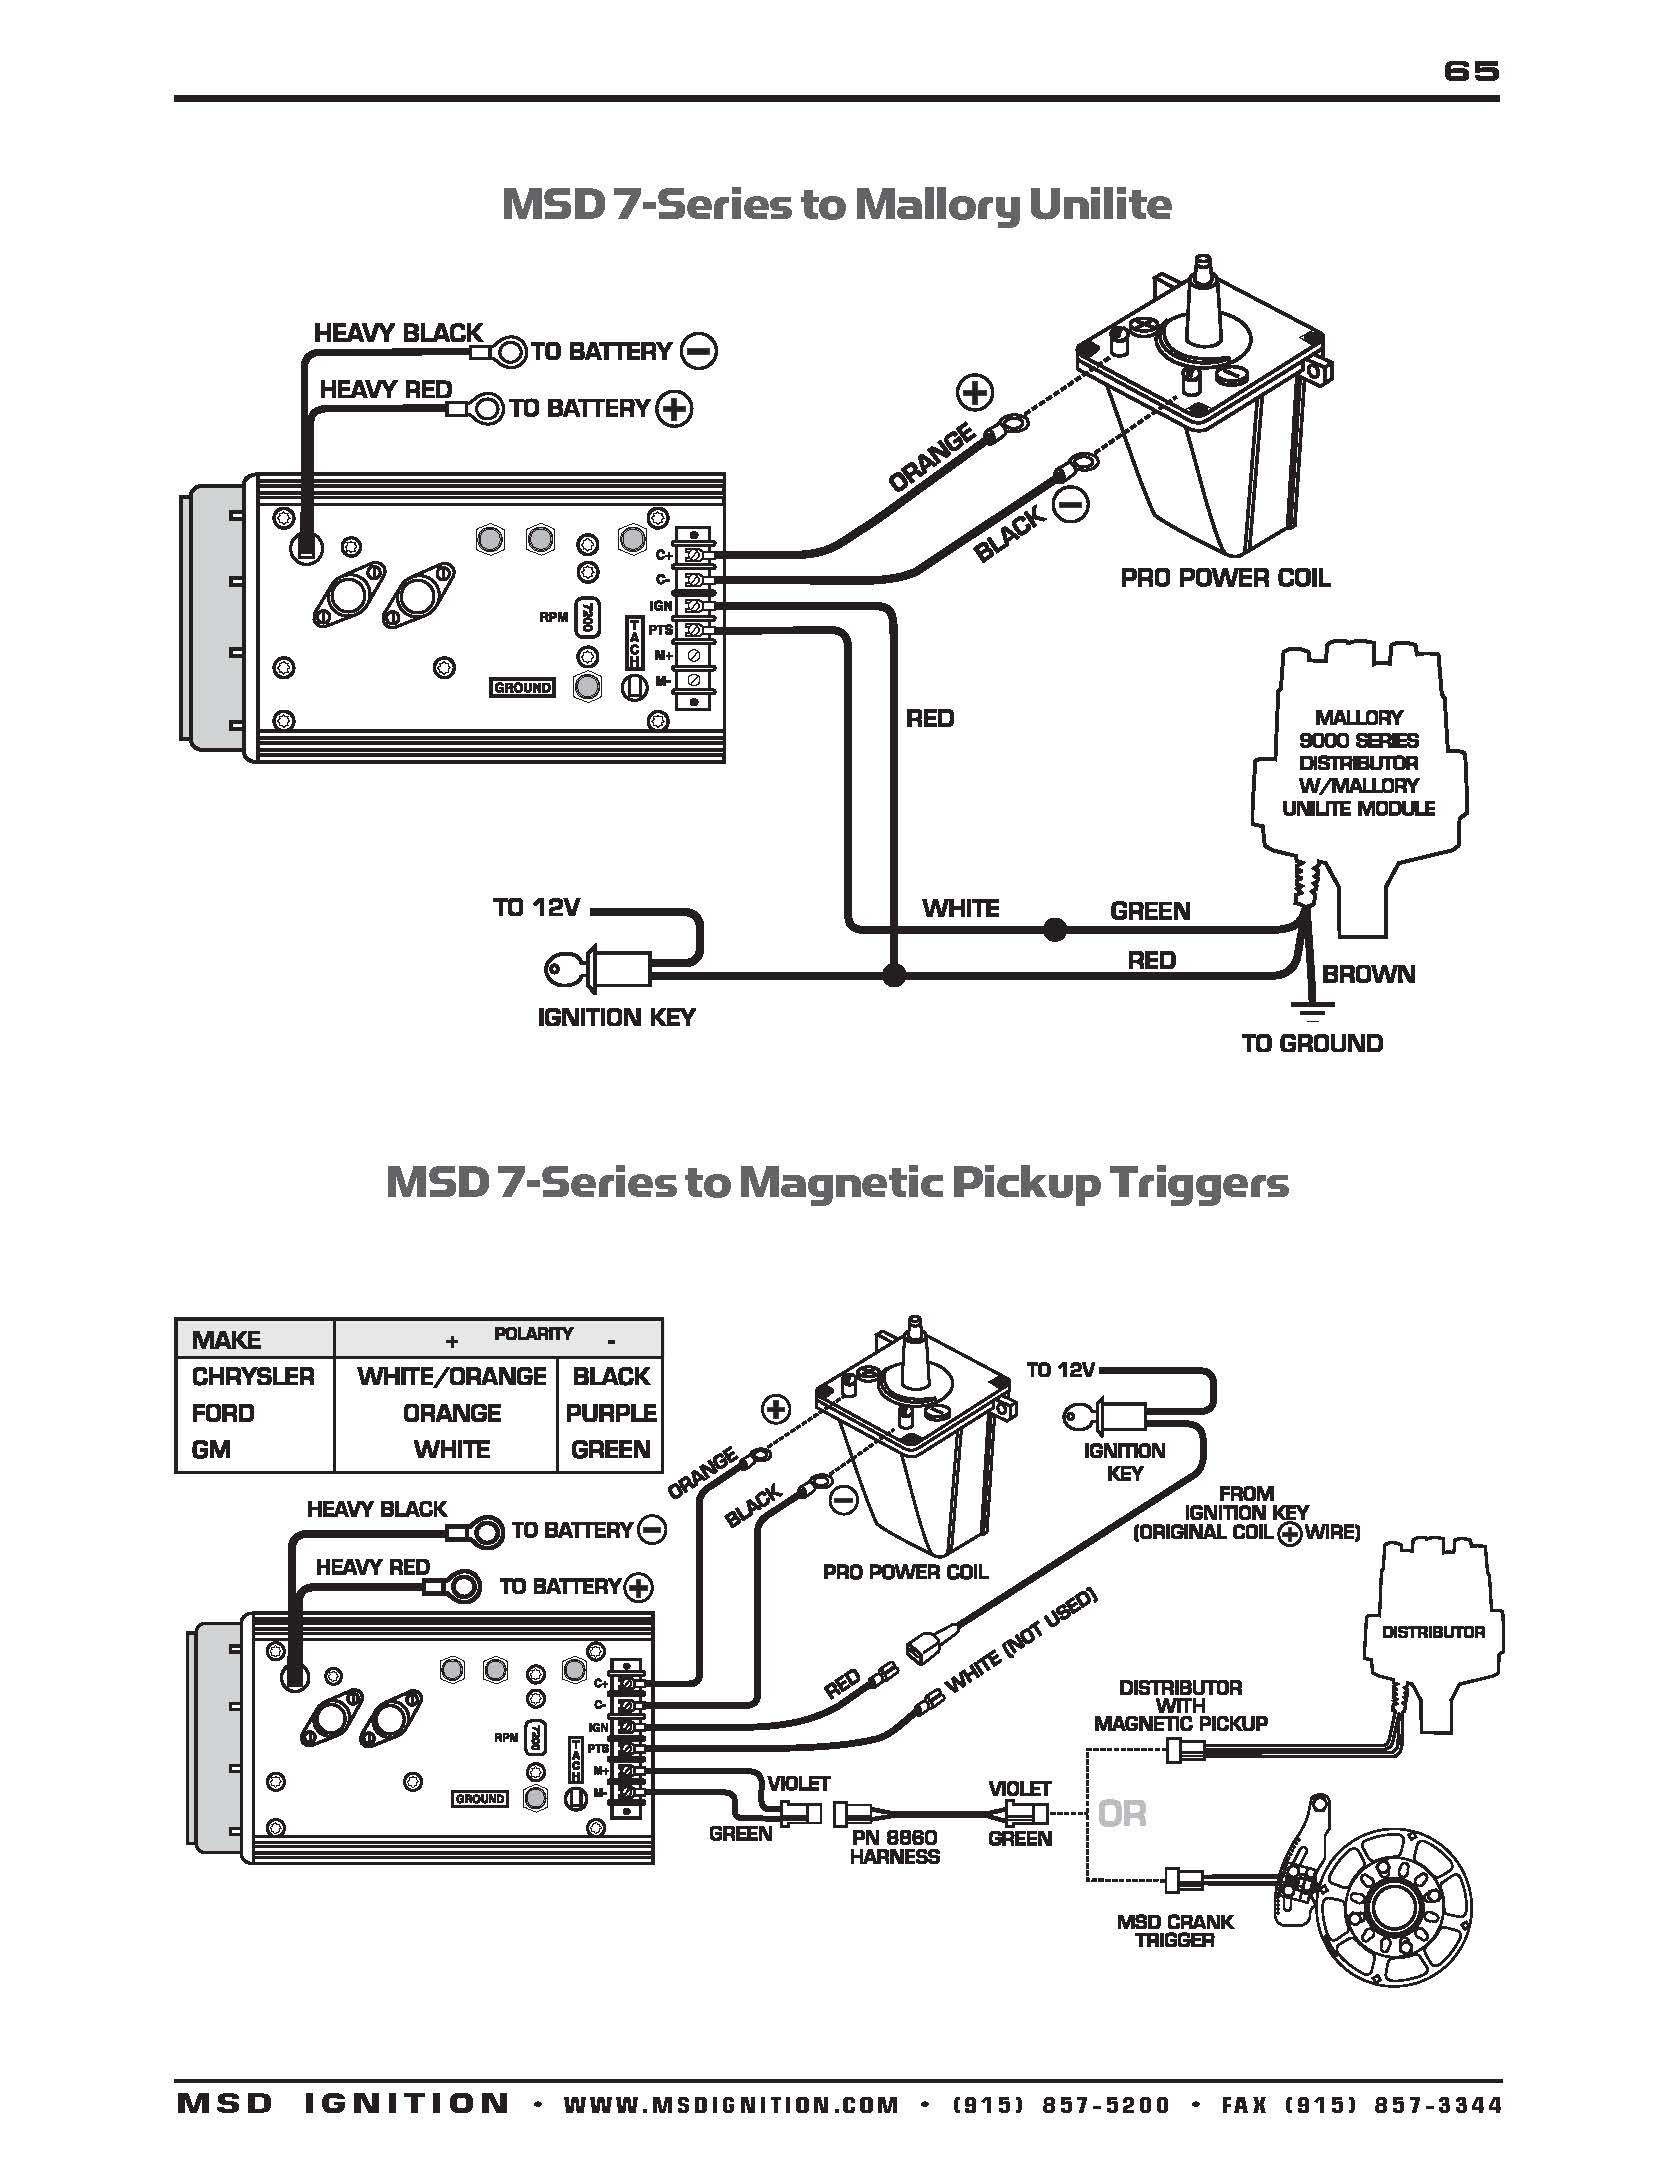 WDTN Pn9615 Page 064 In Msd Distributor Wiring Diagram